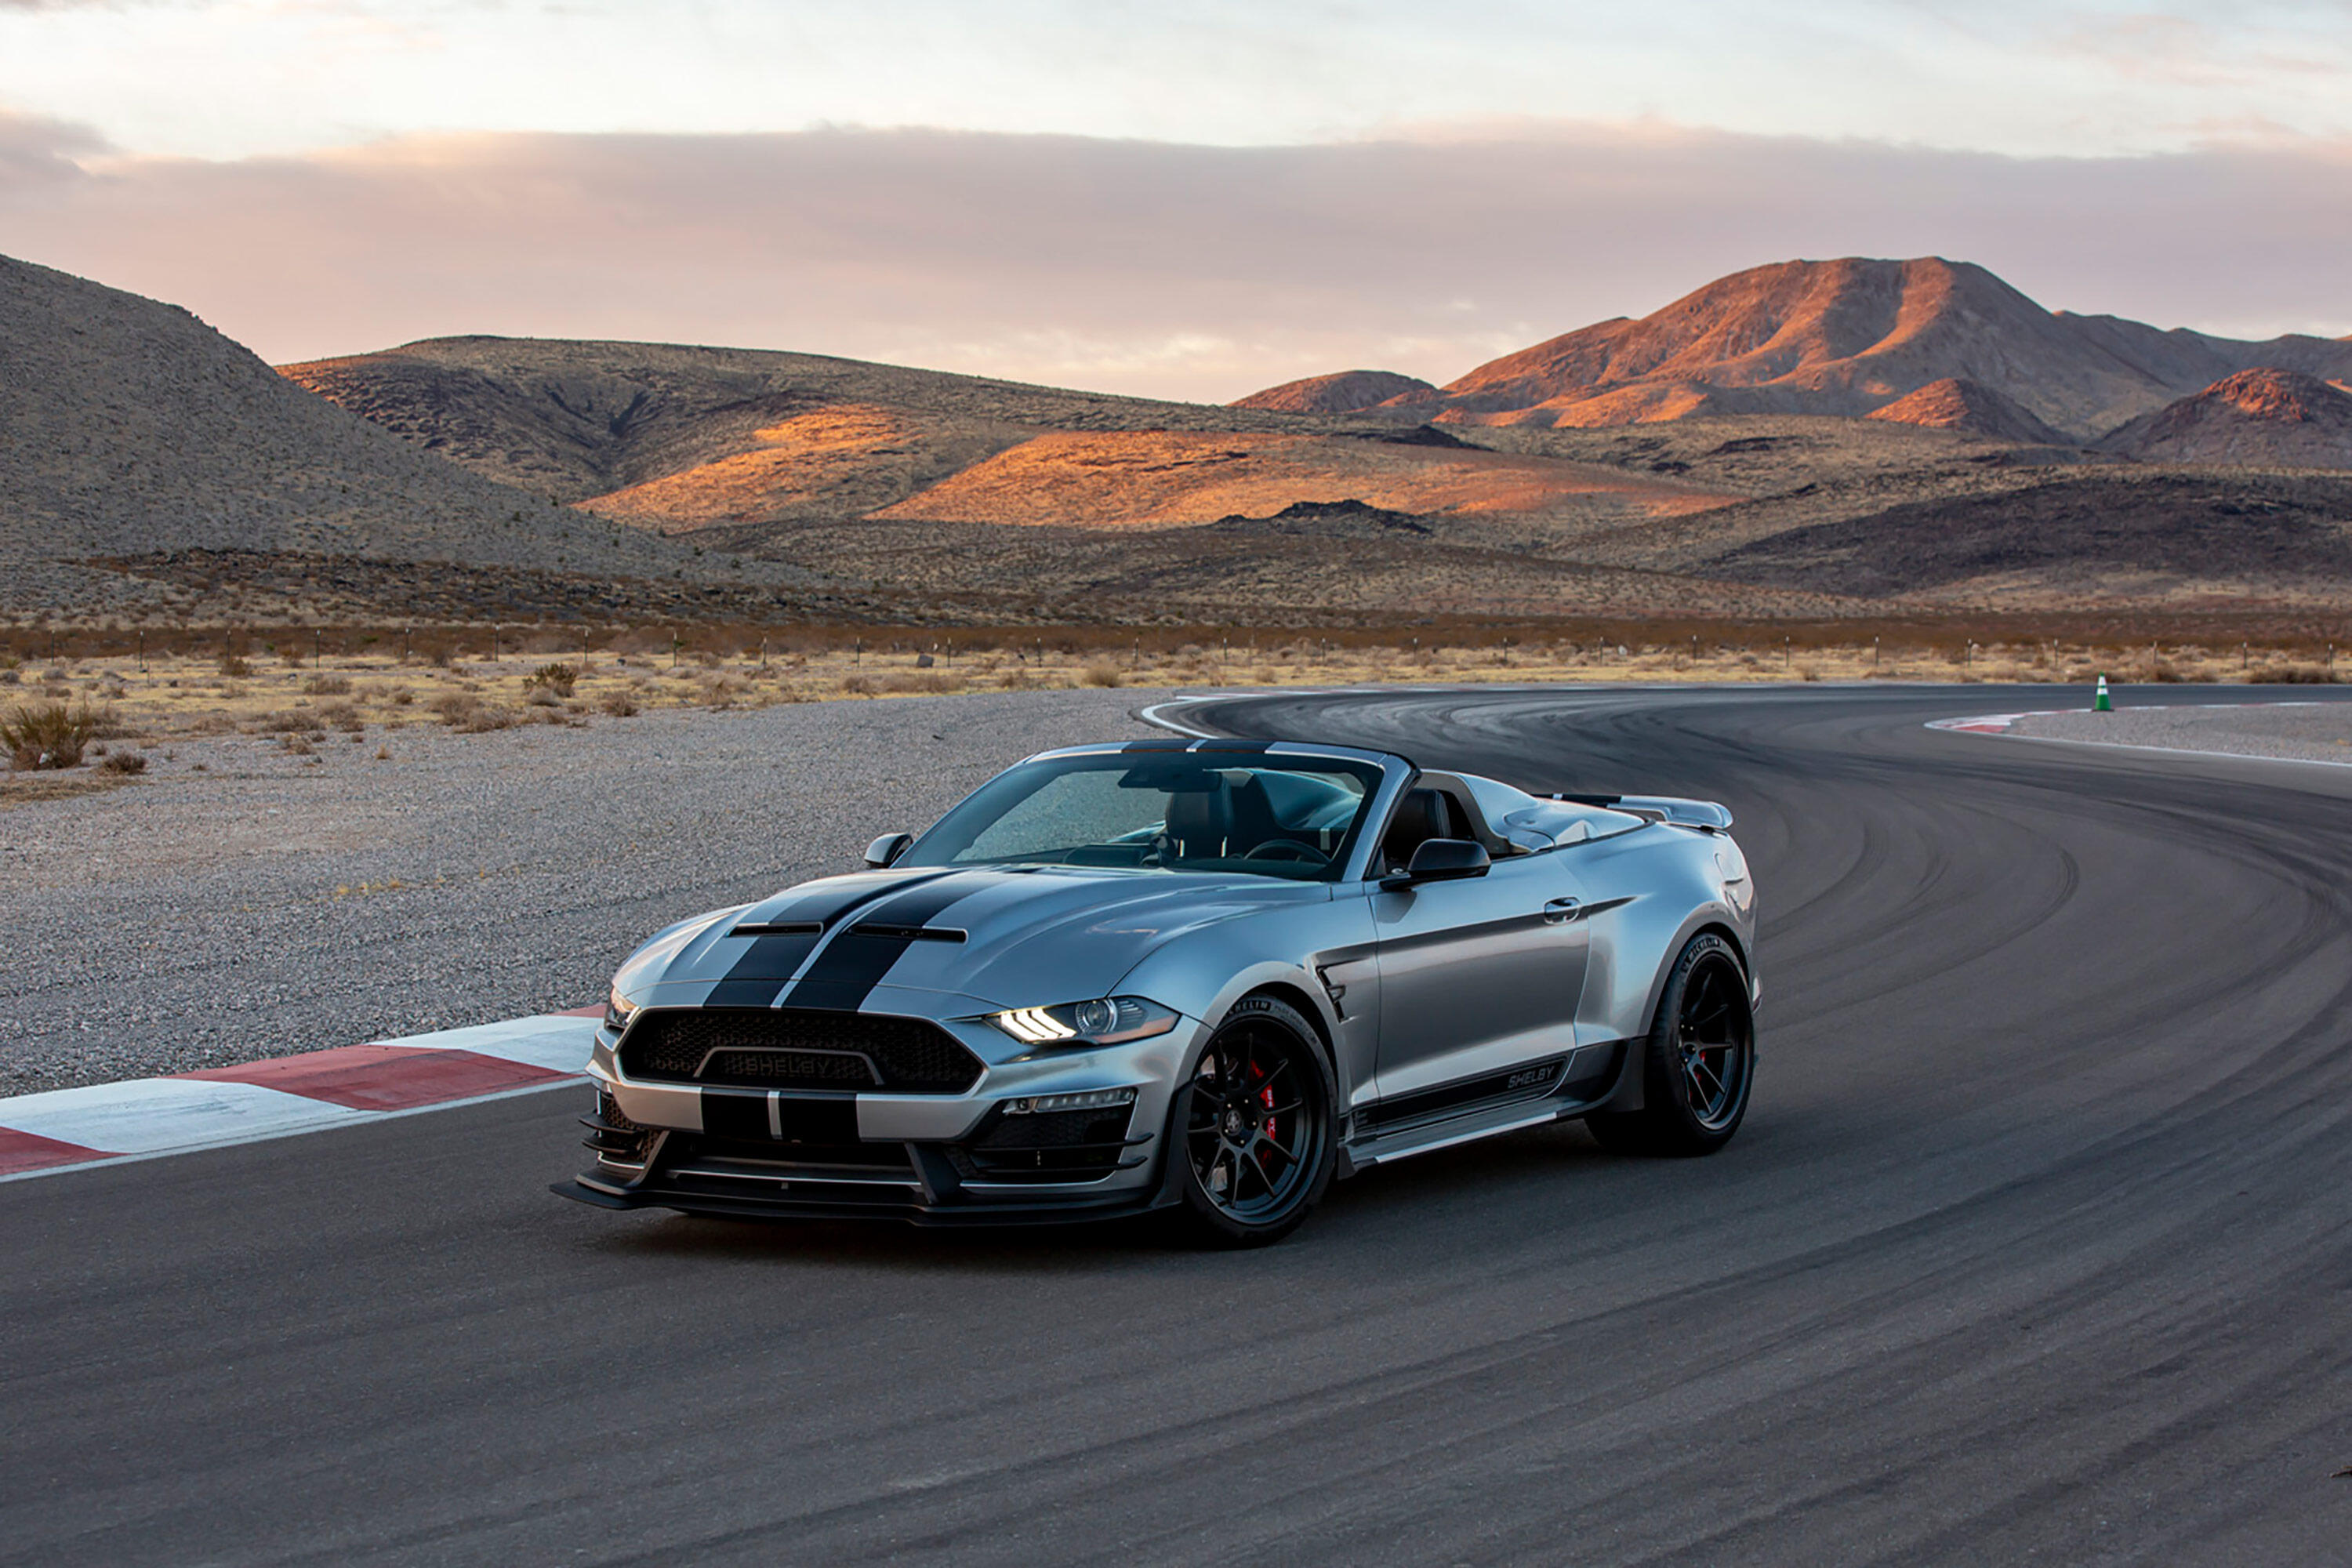 2021 Ford Mustang Shelby Super Snake Speedster - supercharged